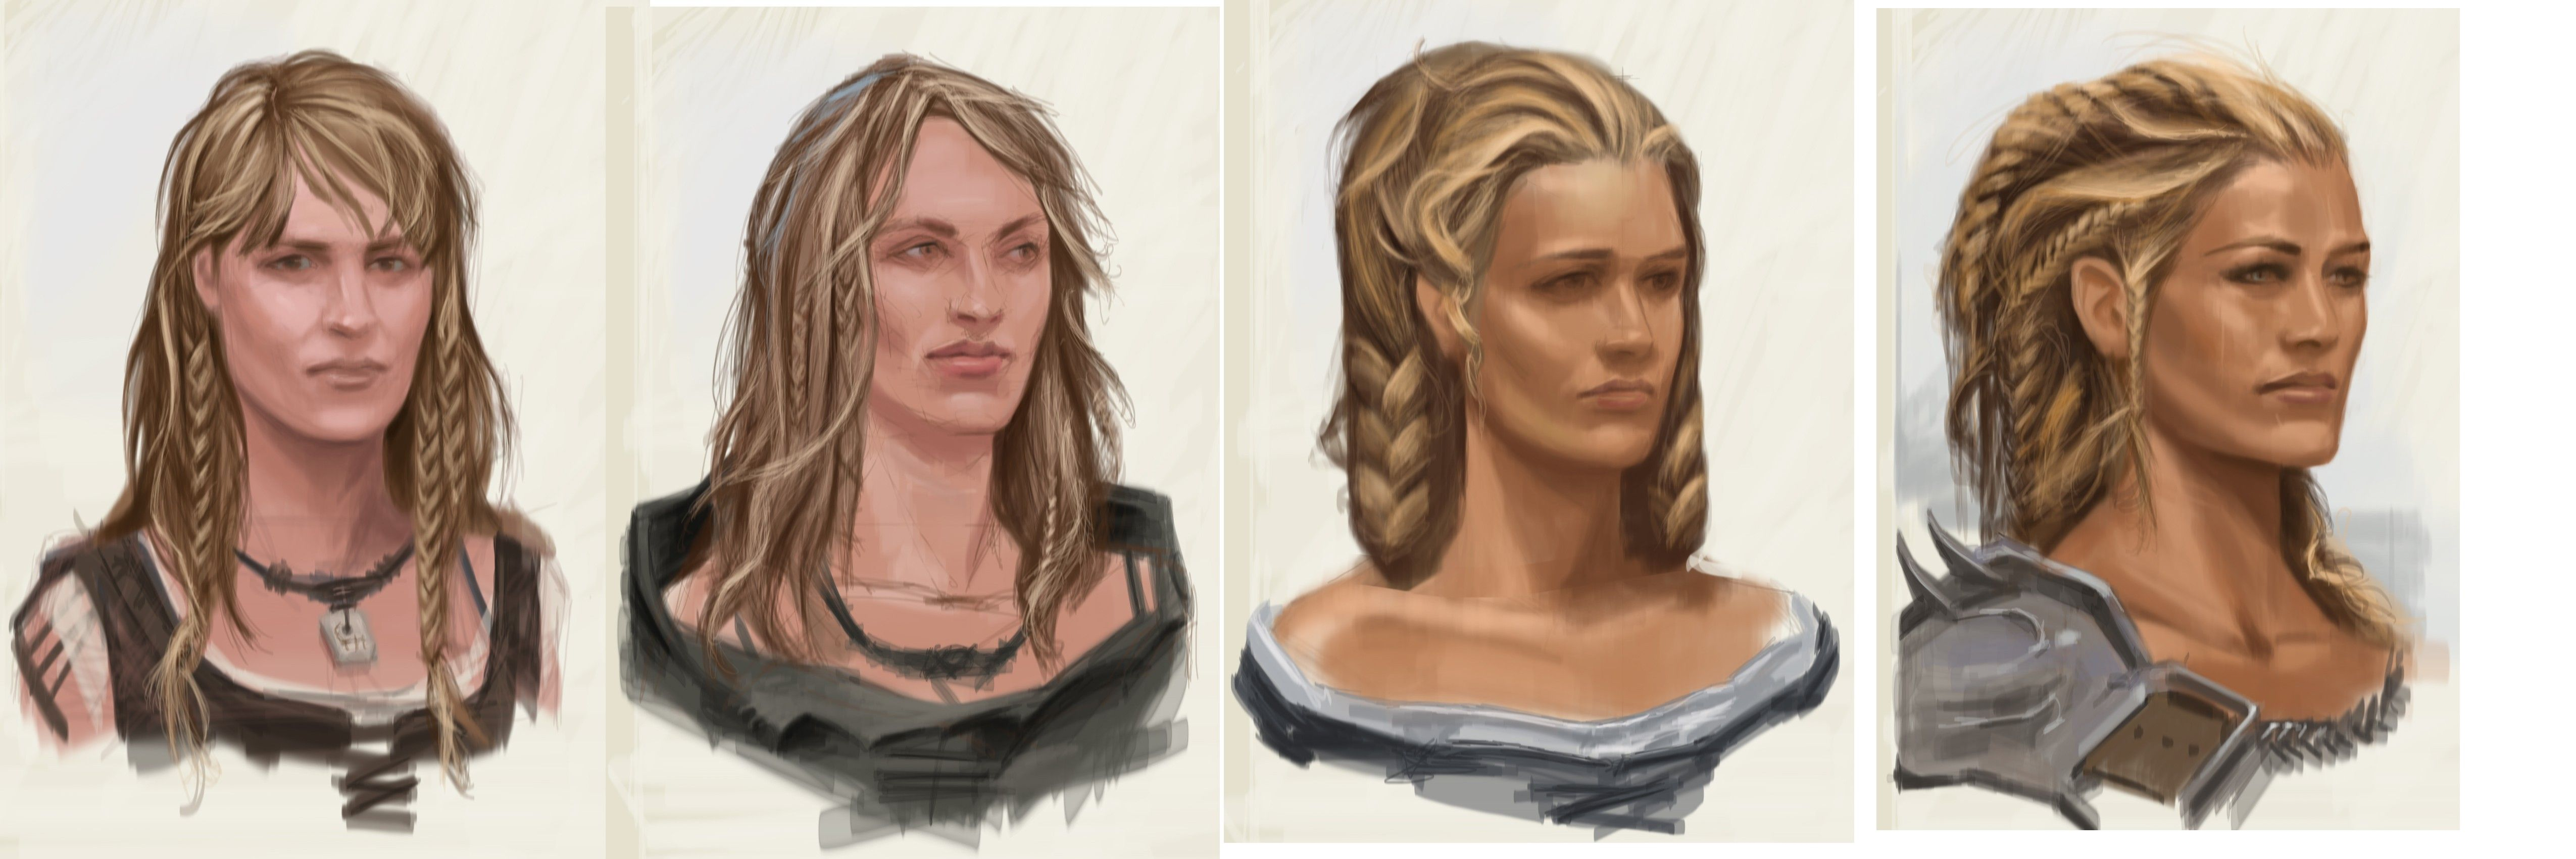 Nord Hair Female Video Games Artwork Skyrim Medieval Hairstyles Female